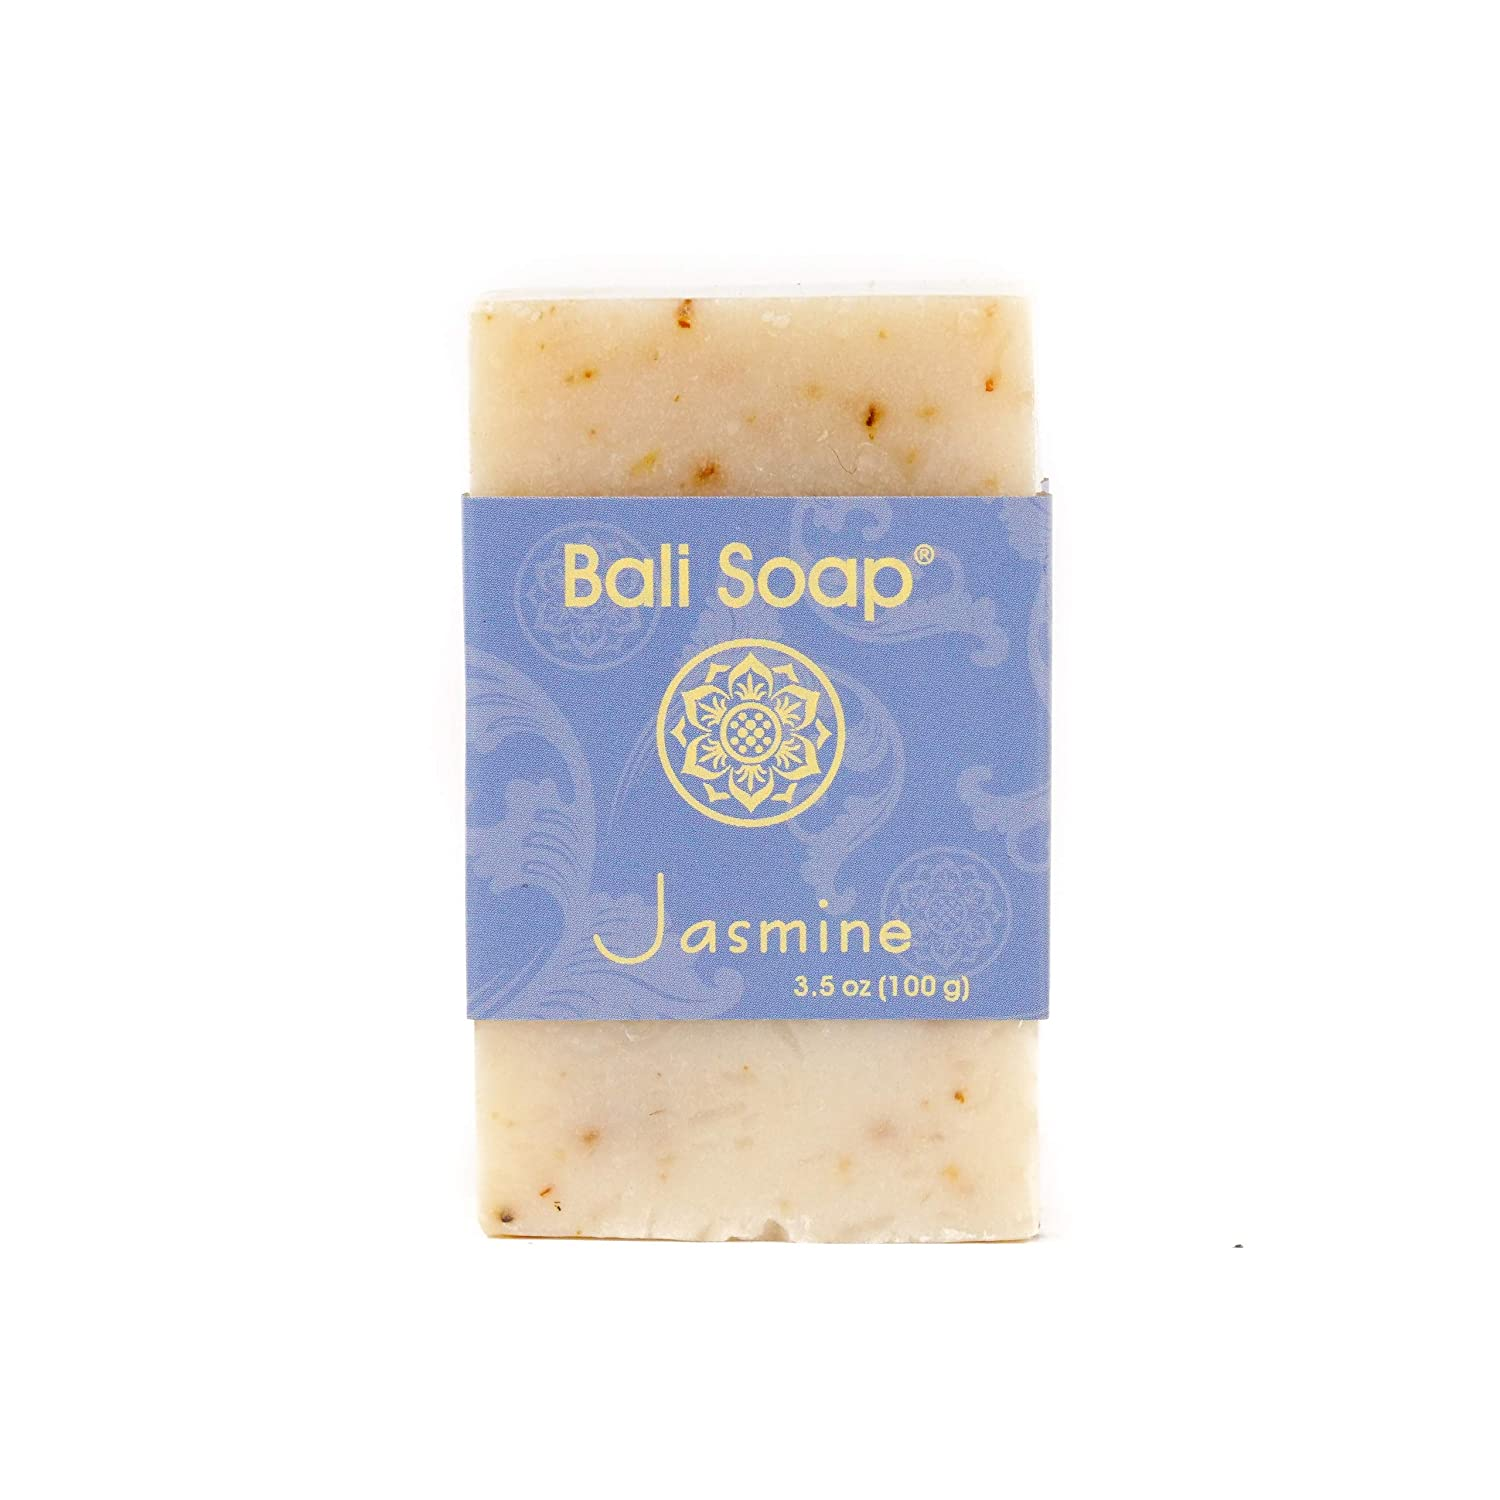 Bali Soap - Jasmine Natural Soap Bar, Face or Body Soap Best for All Skin Types, For Women, Men & Teens, Pack of 3, 3.5 Oz each